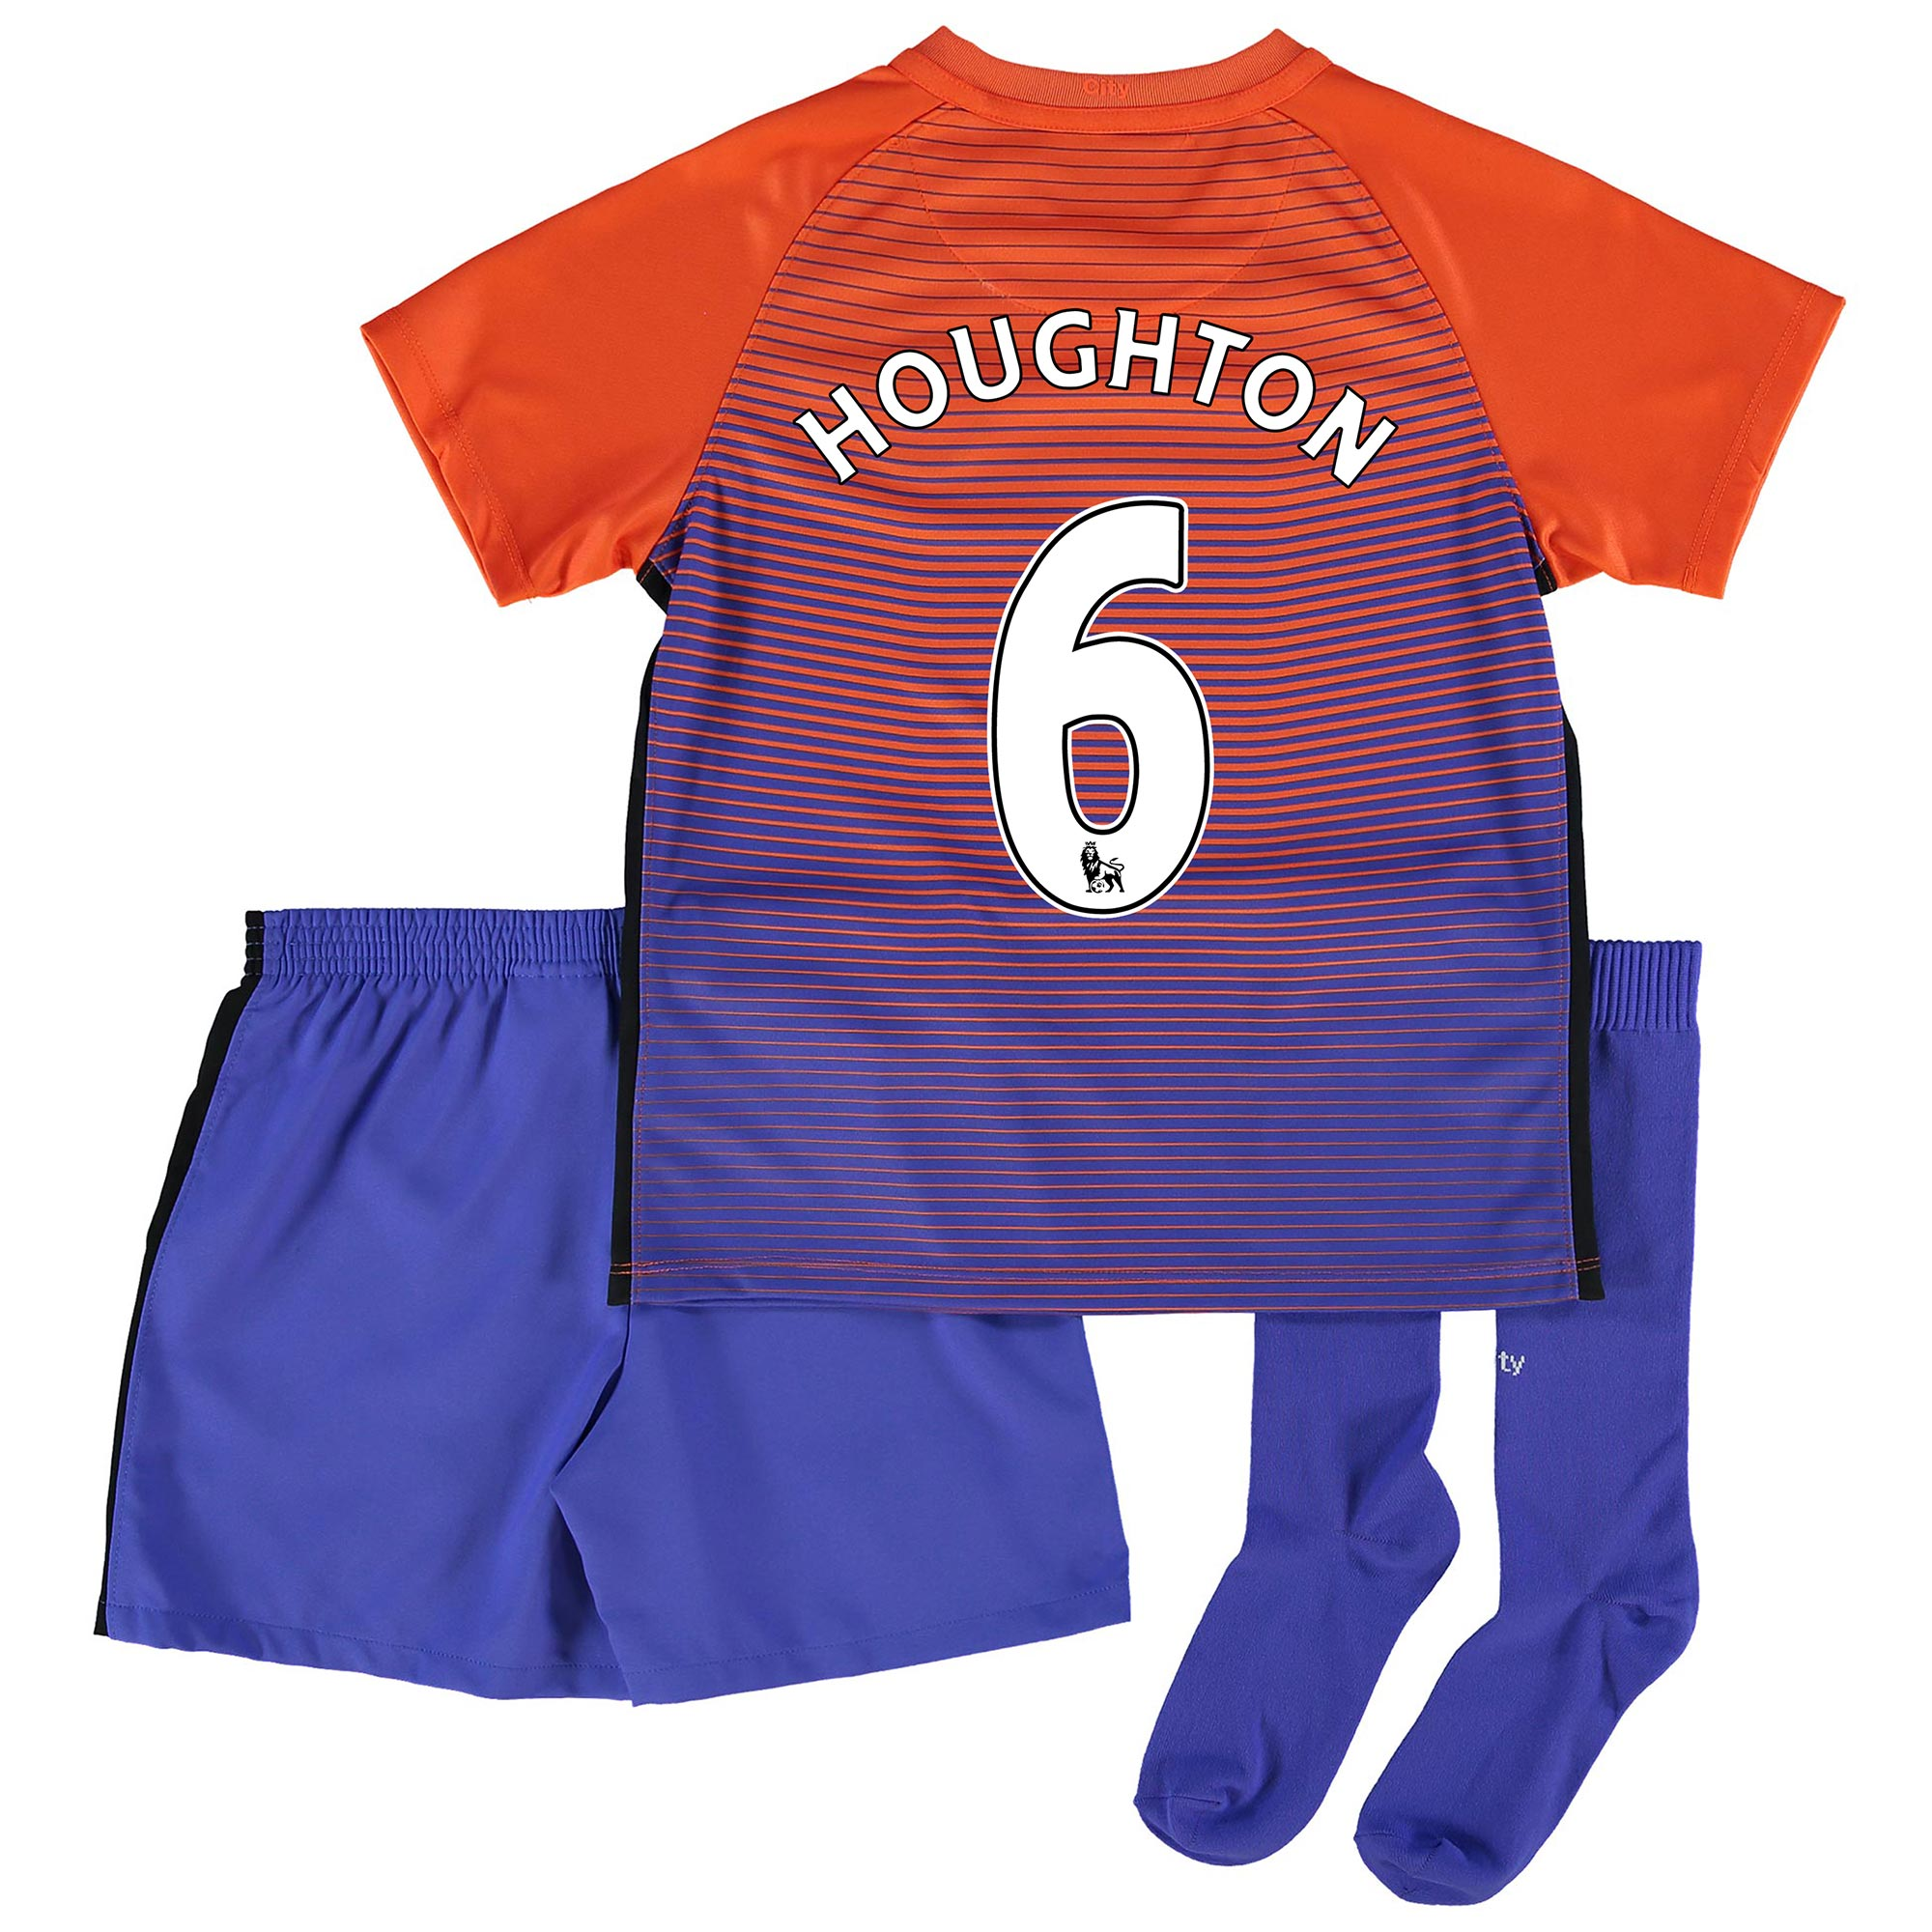 Manchester City Third Stadium Kit 2016-17 - Little Kids with Houghton